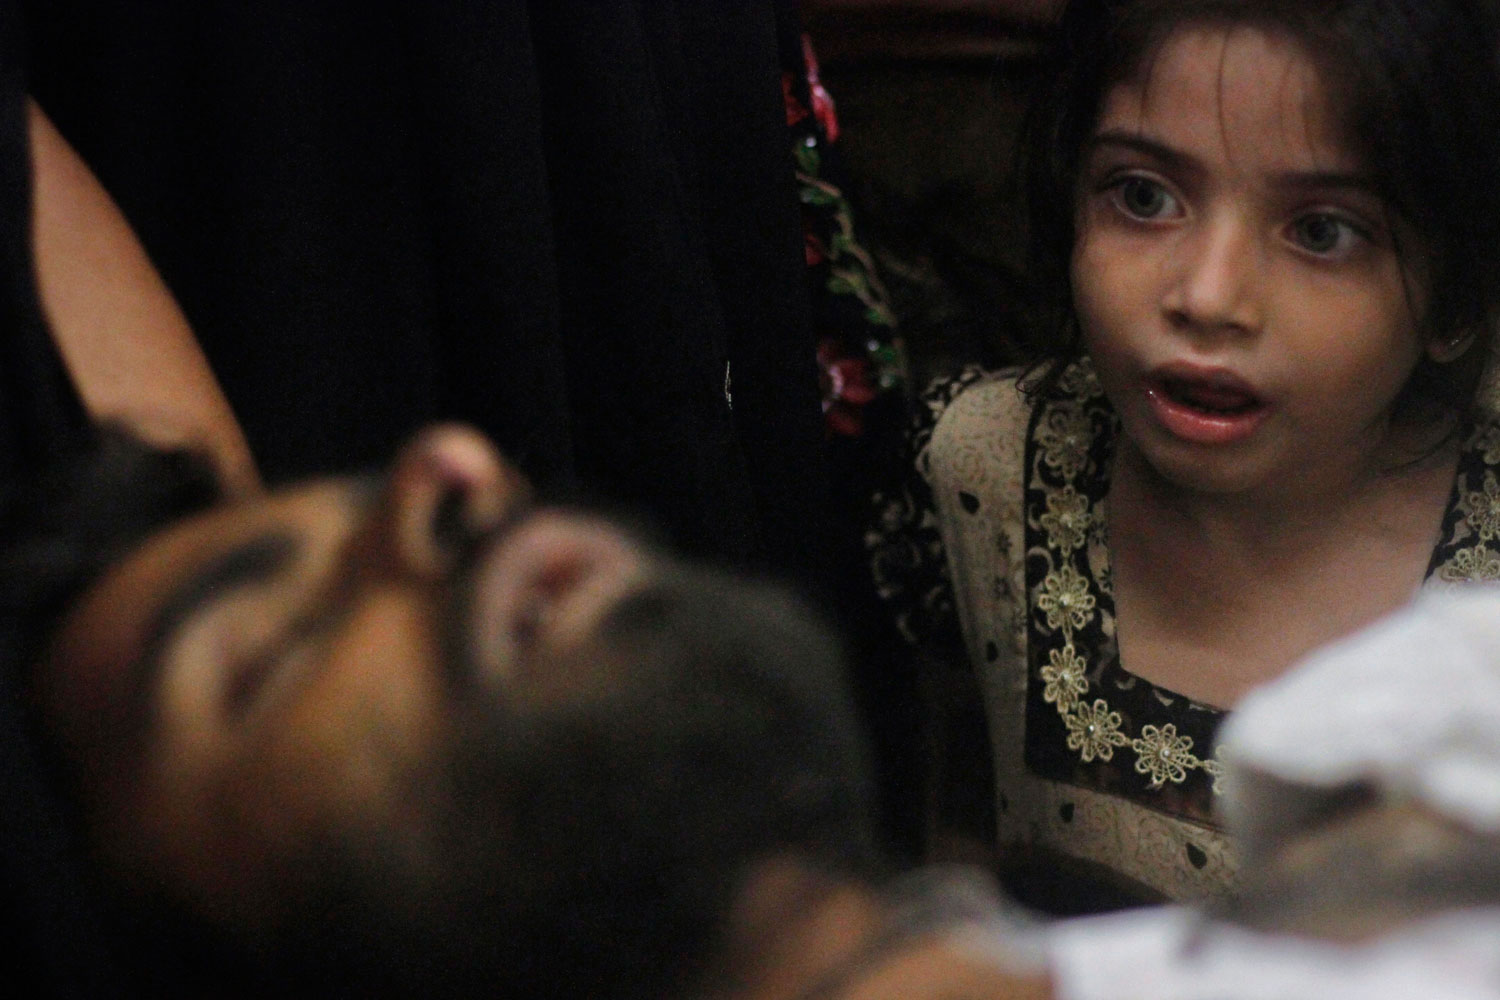 August 23, 2011. 8-year-old Sumayya, whose uncle, Imran Ali, was injured in a shootout by unidentified gunmen, looks at him as he is brought to a hospital for treatment in Karachi. Karachi faced a complete shutdown on Tuesday after the Muttahida Qaumi Movement (MQM) announced that a day of mourning would be observed against the ongoing wave of violence that has claimed nearly 100 lives in less than a week, local media reported.